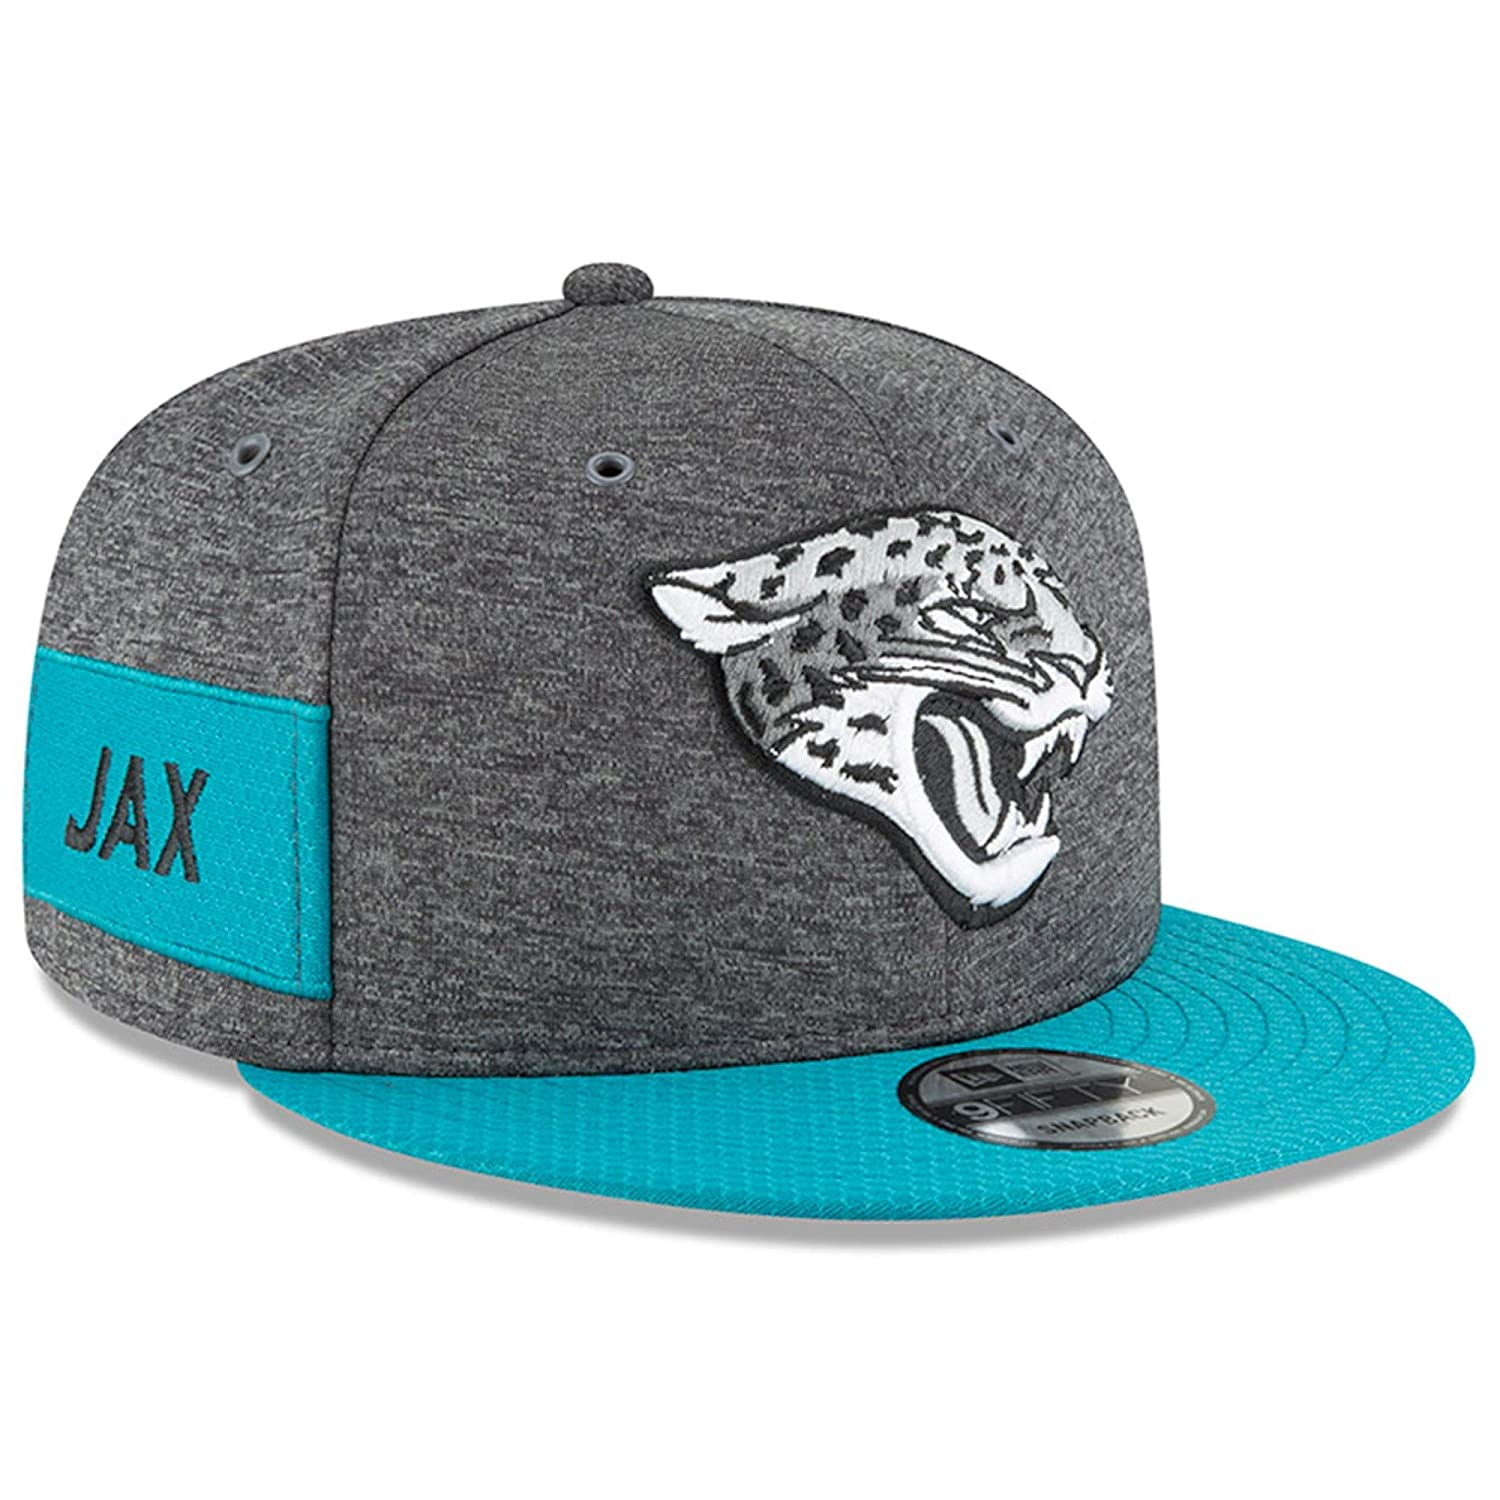 low cost 895c5 7ae1f Amazon.com   New Era Jacksonville Jaguars 2018 Sideline Onfield NFL  Graphite Charcoal Teal 9Fifty Snapback Adjustable Hat, OSFM   Sports    Outdoors